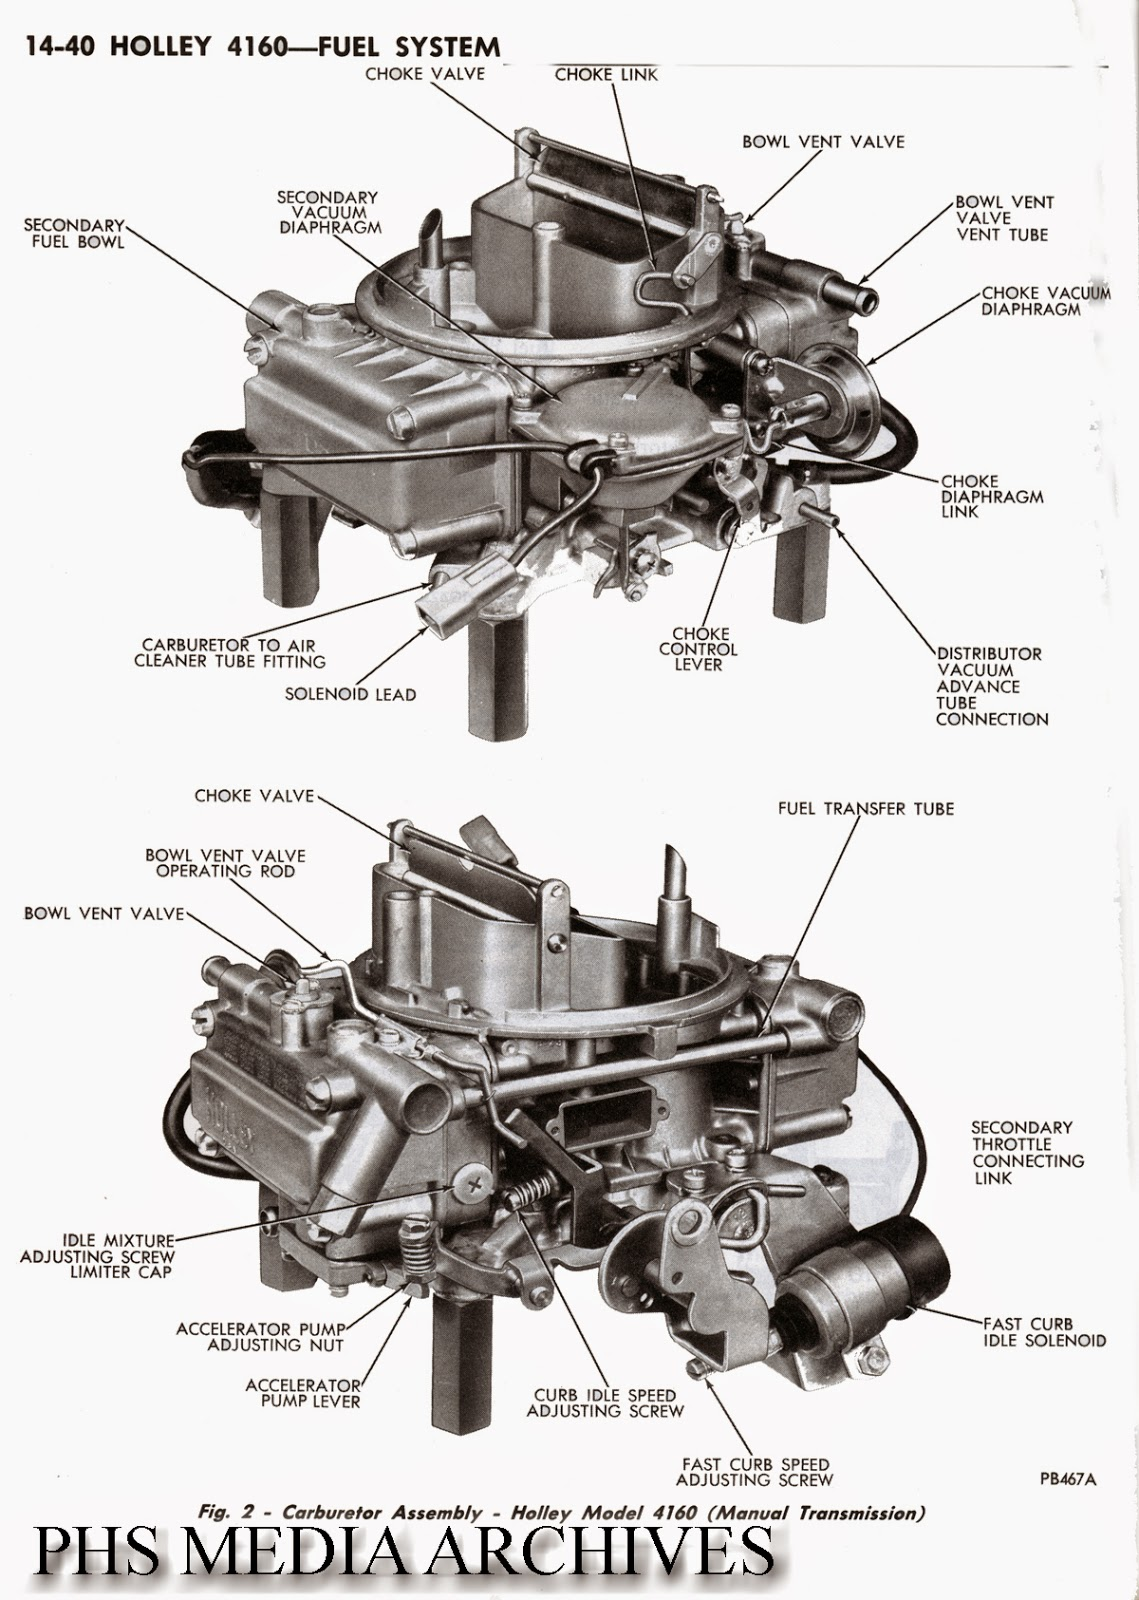 Holley 600 Cfm Carburetor Diagram furthermore 1 besides Holley 600 Cfm Carburetor Diagram as well Edelbrock 1406 Choke Wiring in addition Edelbrock 1405 Carb Diagram. on edelbrock 600 carburetor